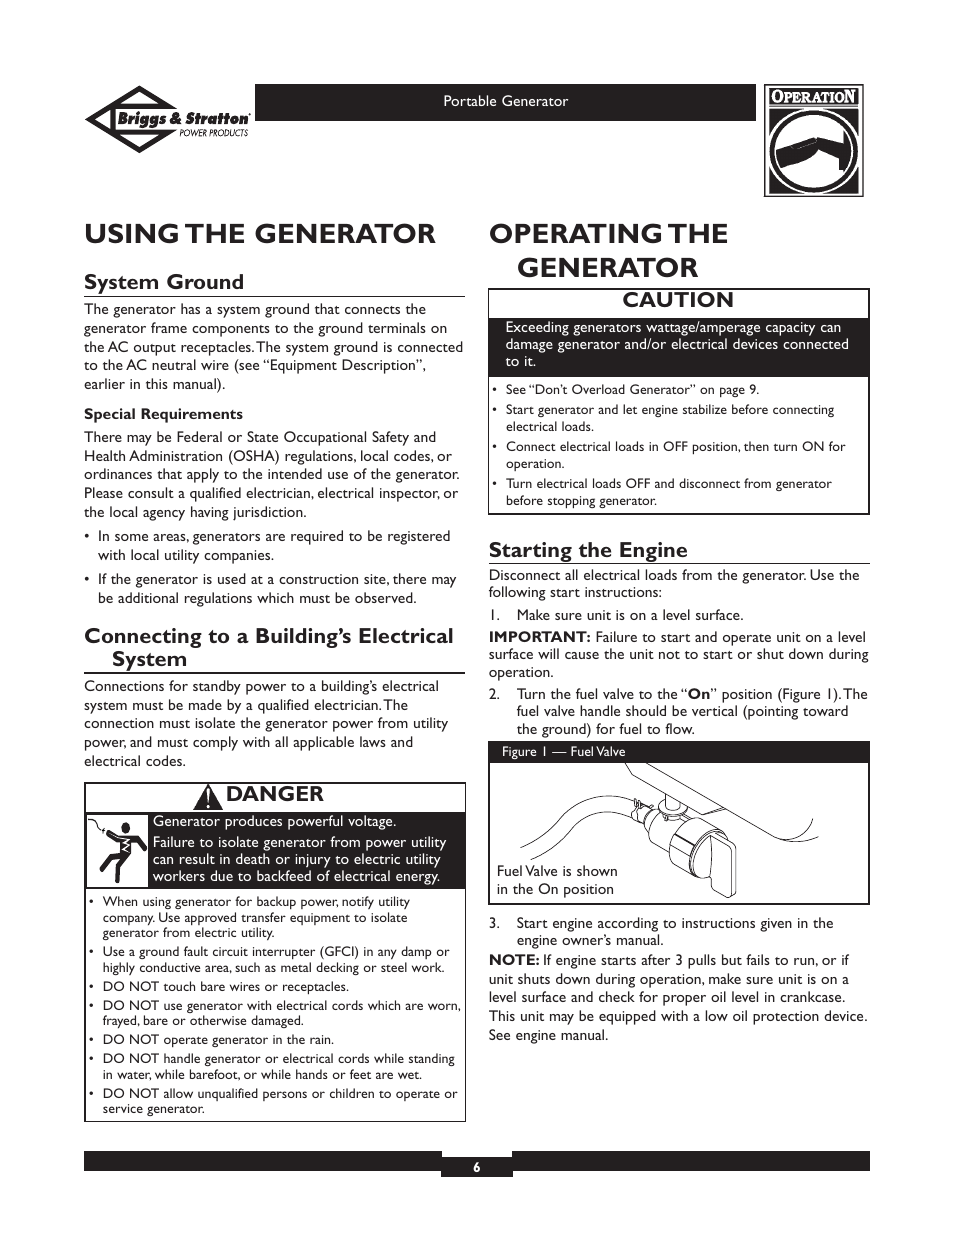 Using the generator, Operating the generator, System ground